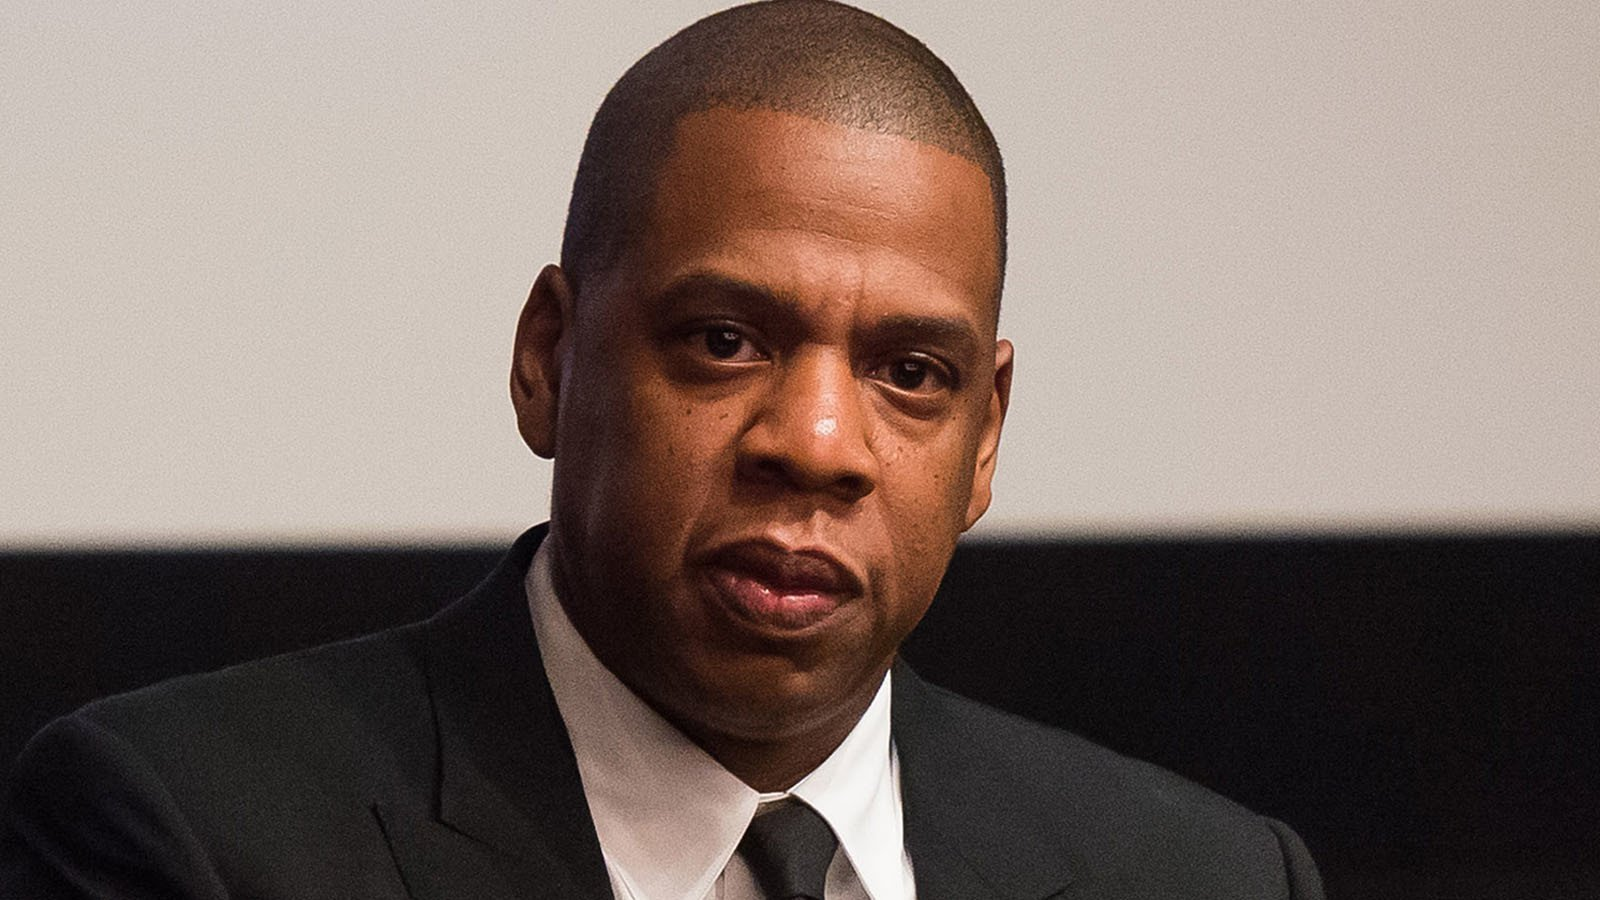 Jay-Z replies Trump's reported 'shithole' comment